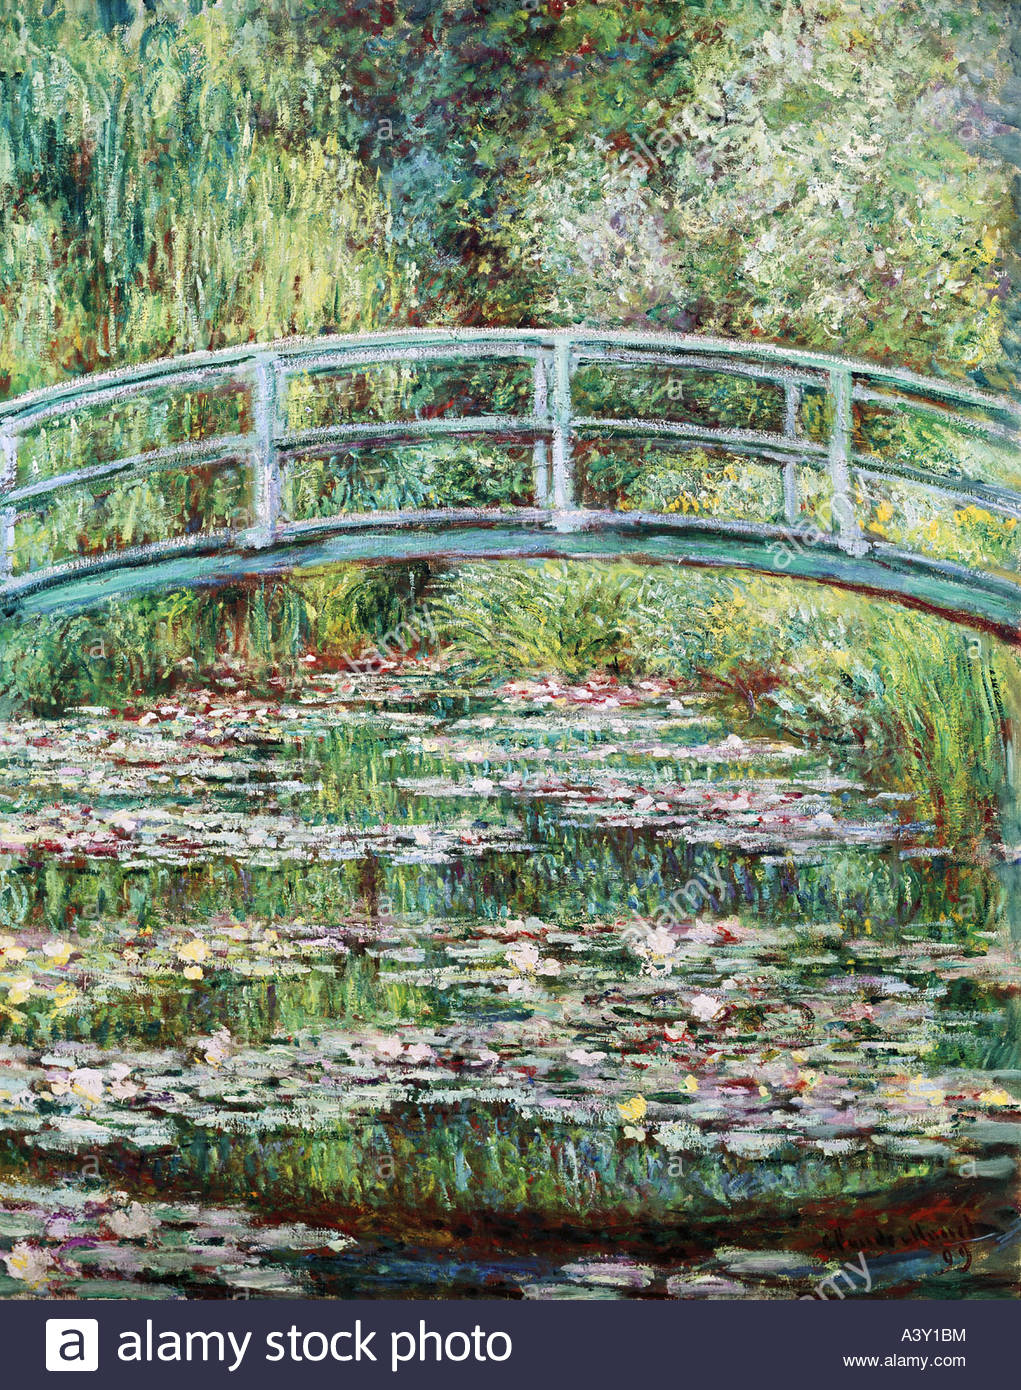 """""""Belle Arti, Monet, Claude, (1840 - 1926), pittura, 'Pont Japonais a Giverny', (""""ponte giapponese Immagini Stock"""